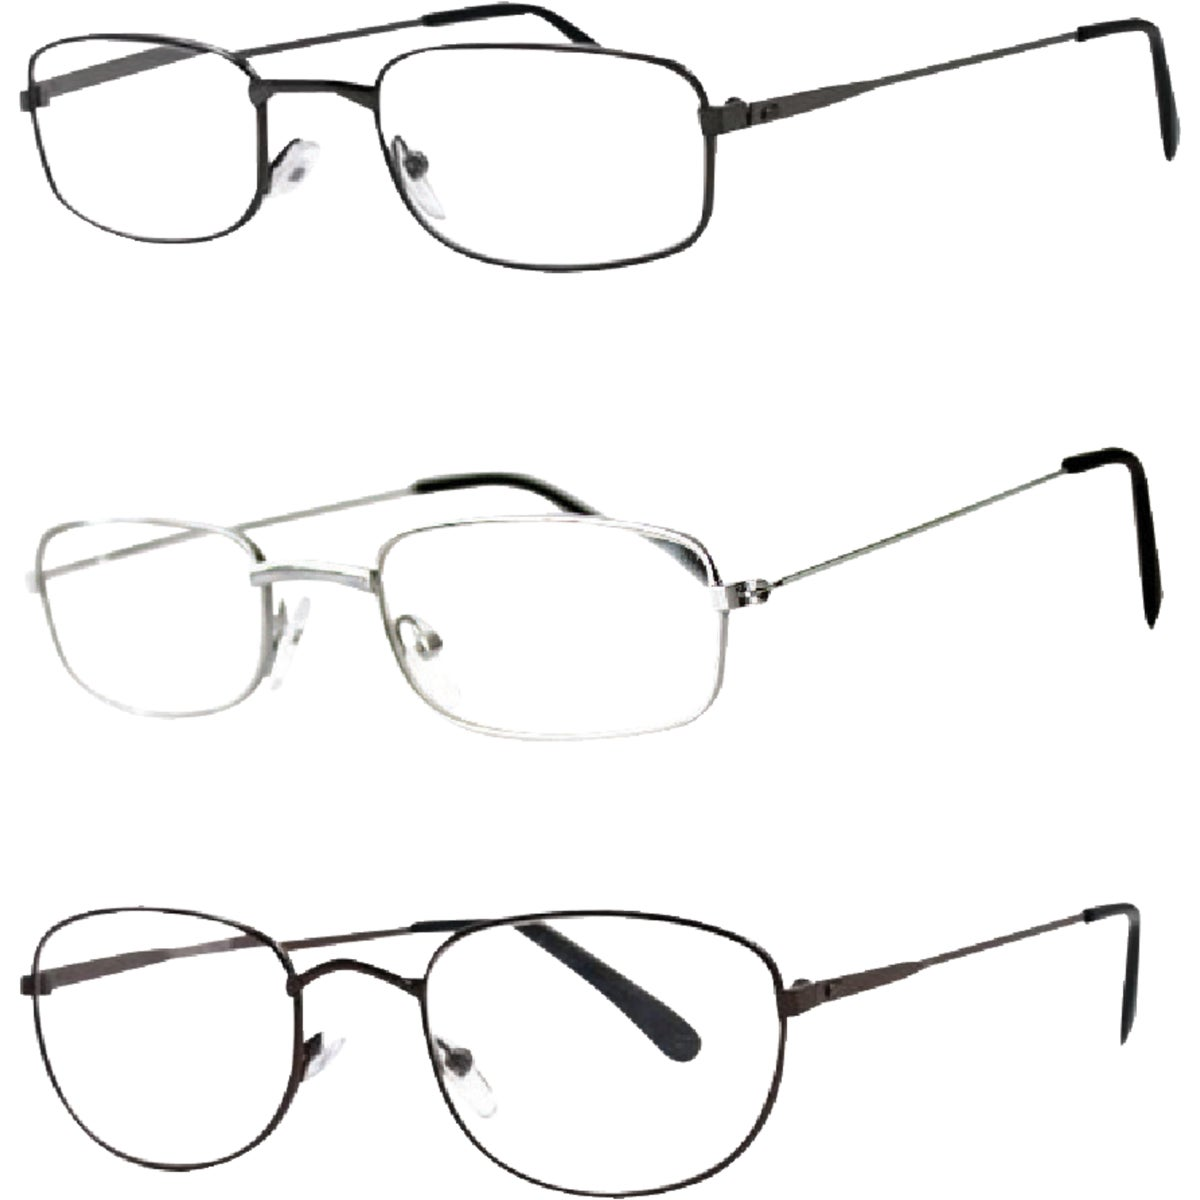 READING GLASSES - 820476 by Do it Best